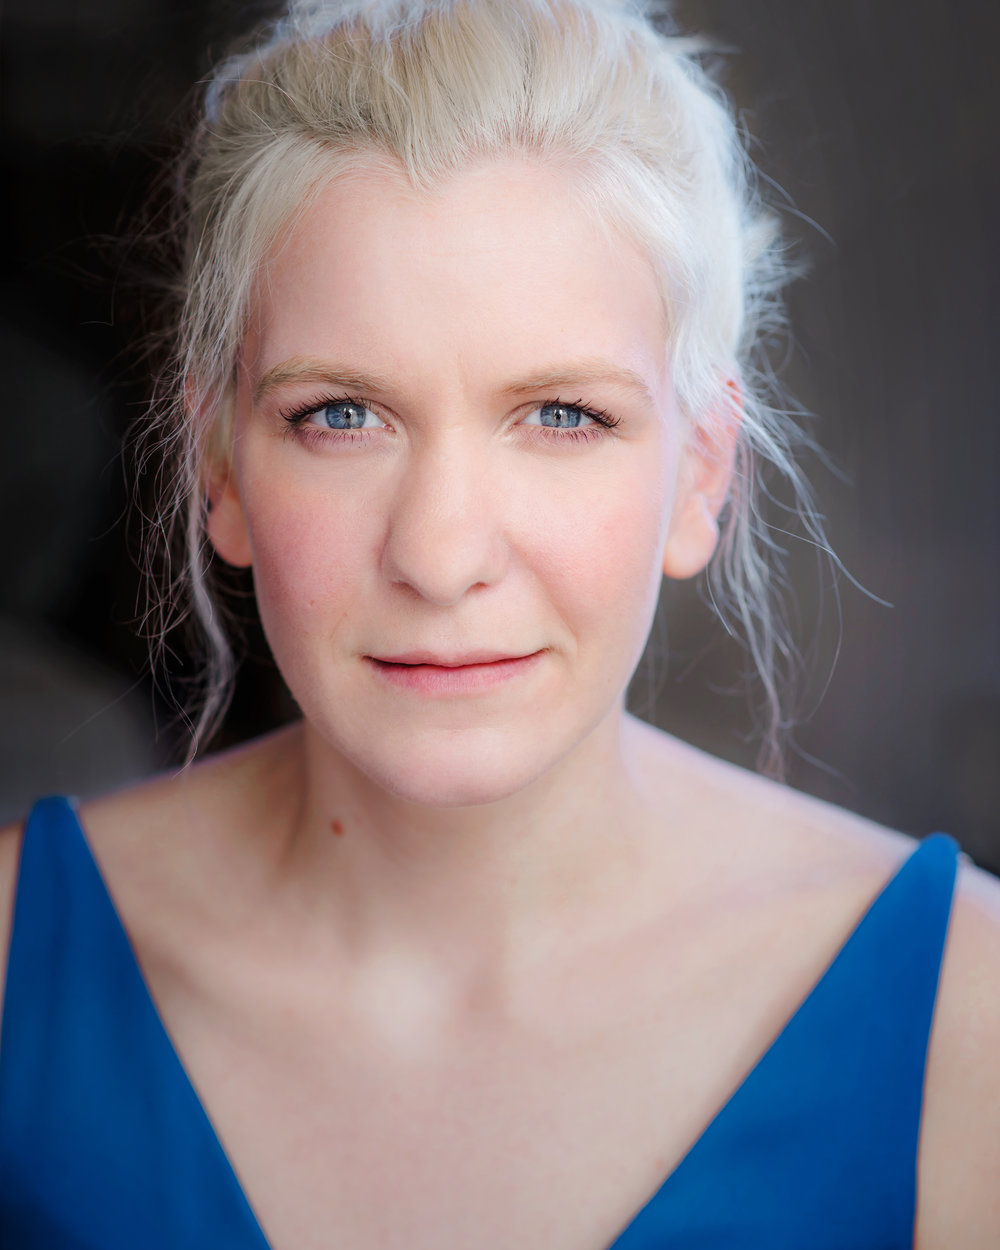 Kat Haan - Core Artist Currently directing the touring production of Kara Sevda as well as starting as Celia in the Toronto Fringe Festival production. Kat also directed the original production at the 2016 Edinburgh Fringe Festival.